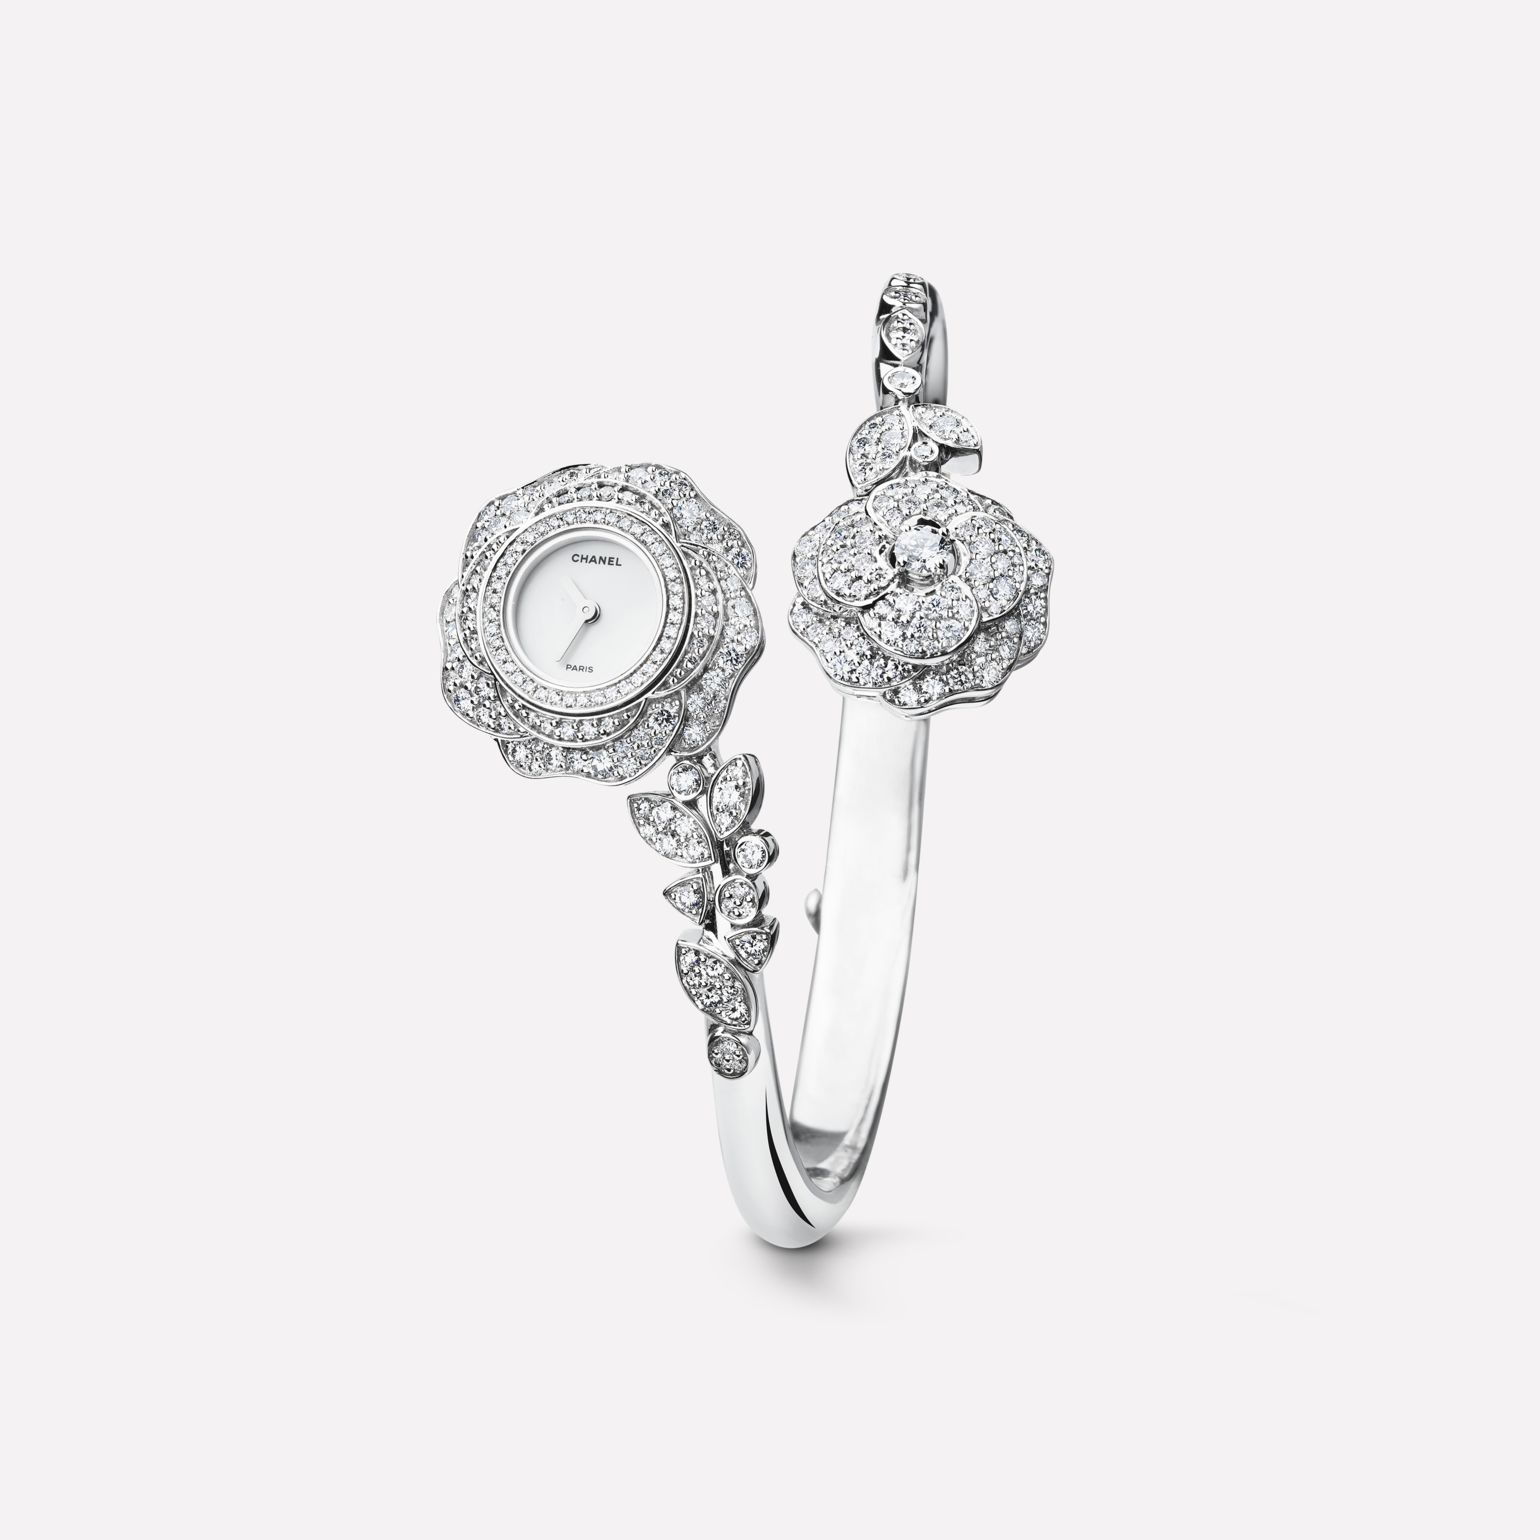 Camélia Jewelry Watch Camellia bud motif in 18K white gold and diamonds